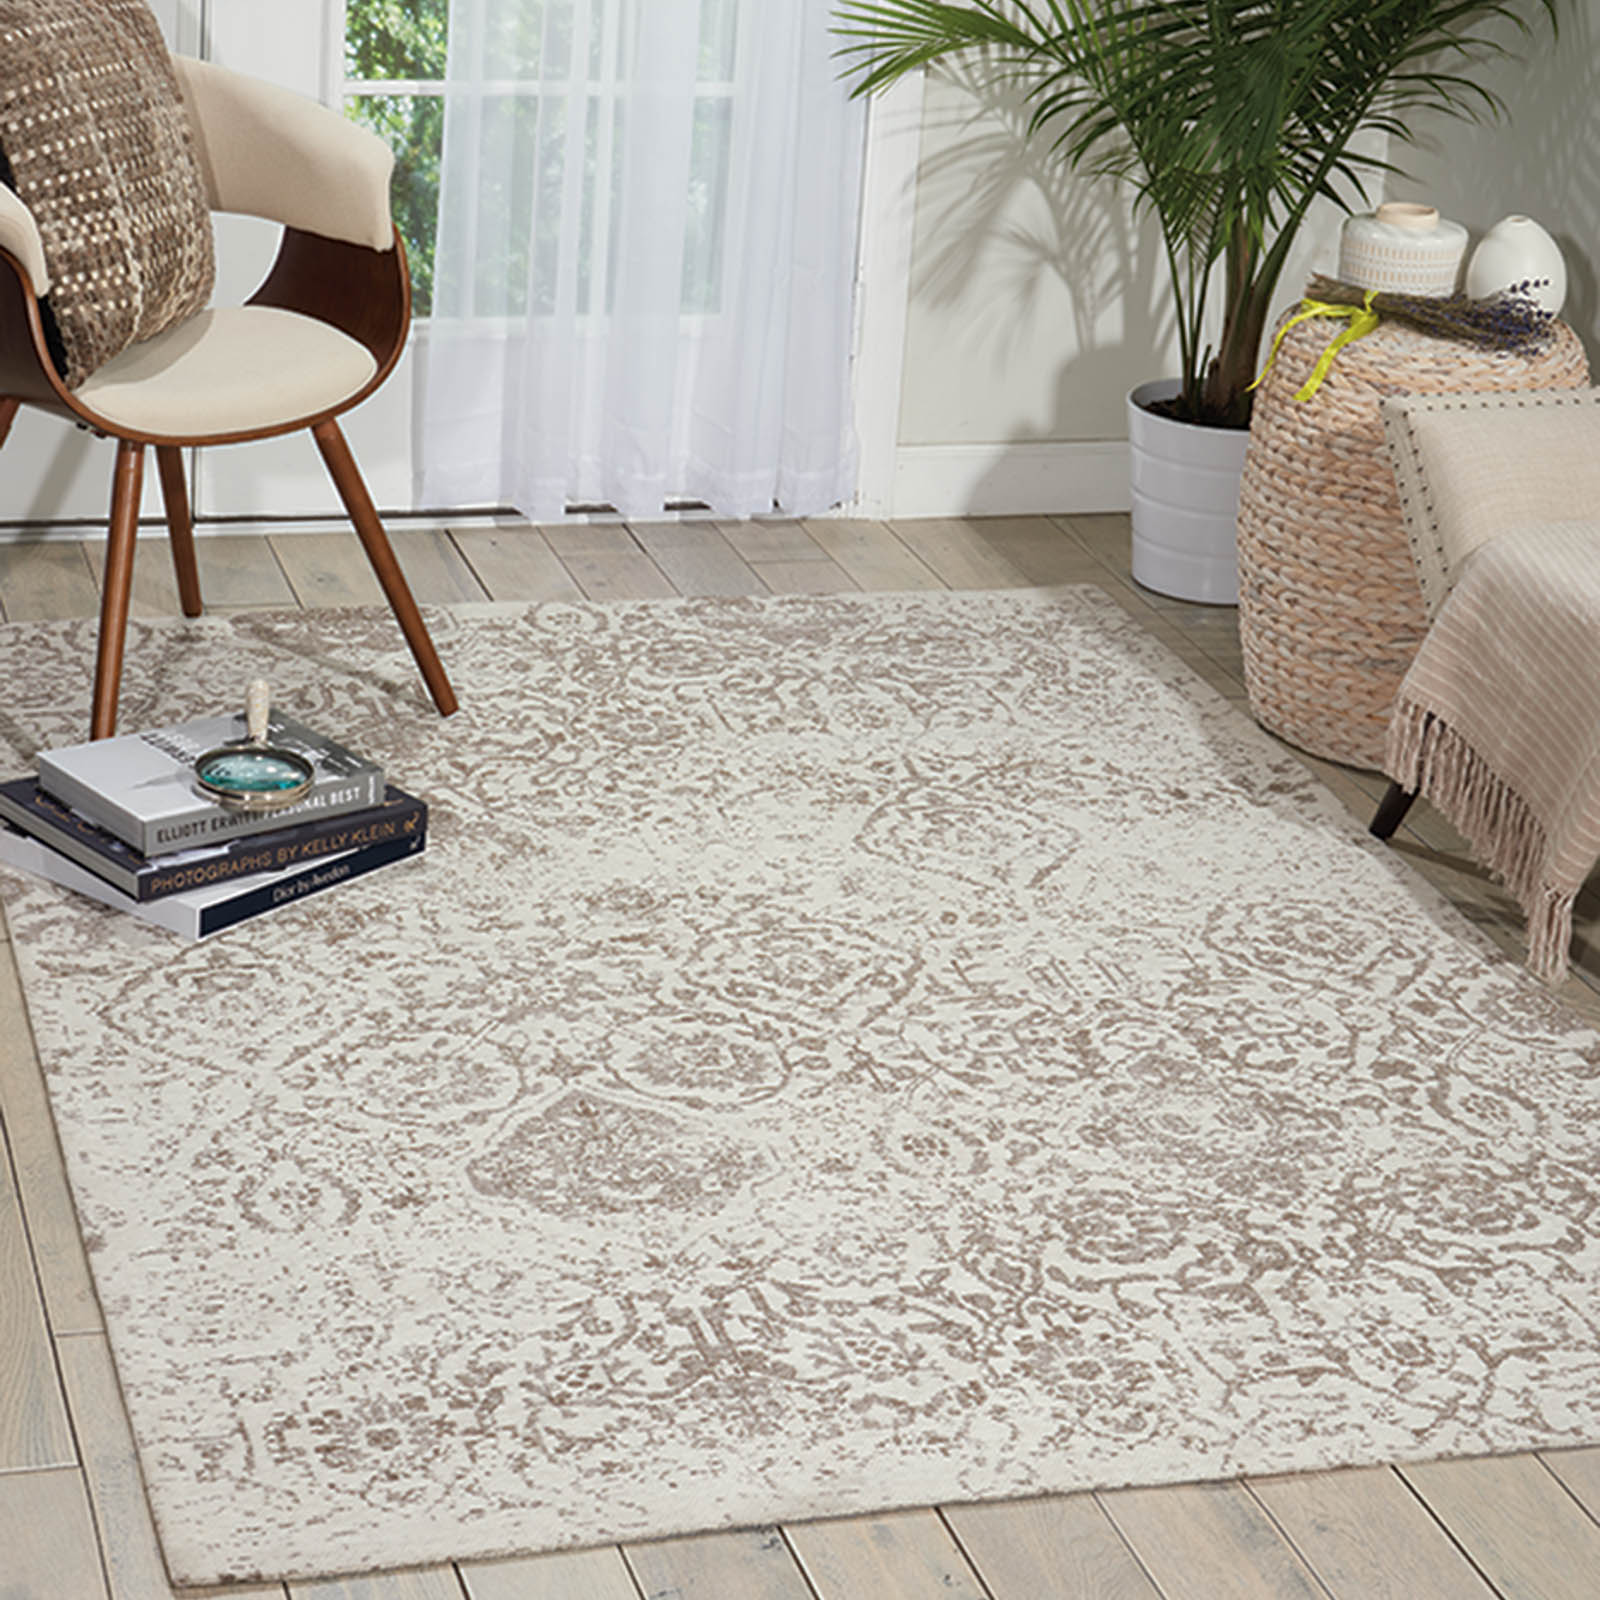 Damask Rugs DAS06 in Ivory by Nourison